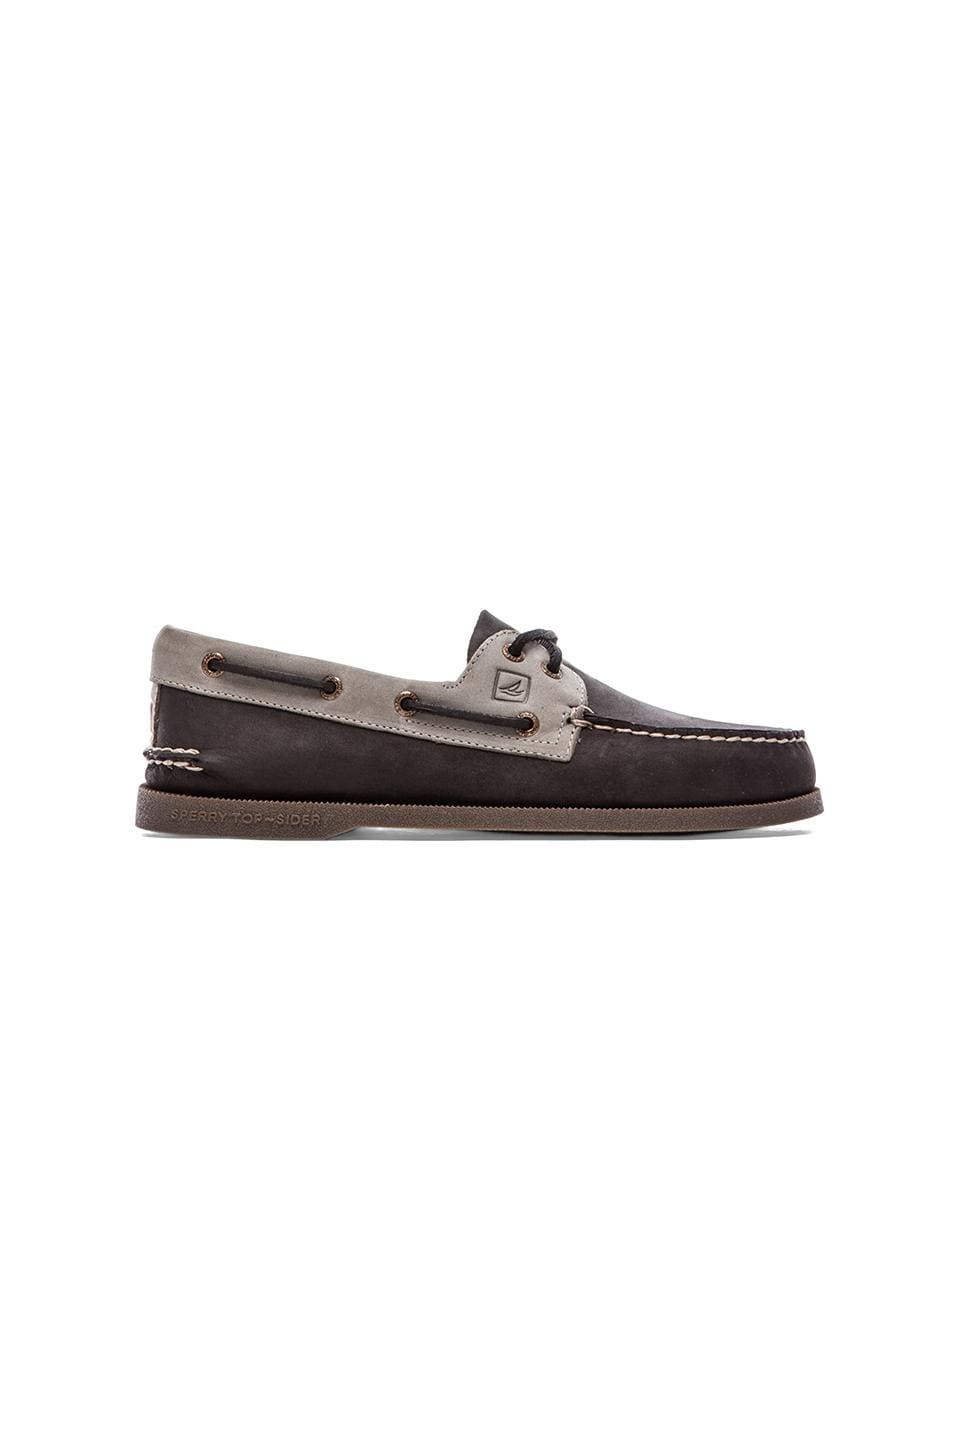 Sperry Top-Sider A/O 2-Eye Two Tone in Black Grey